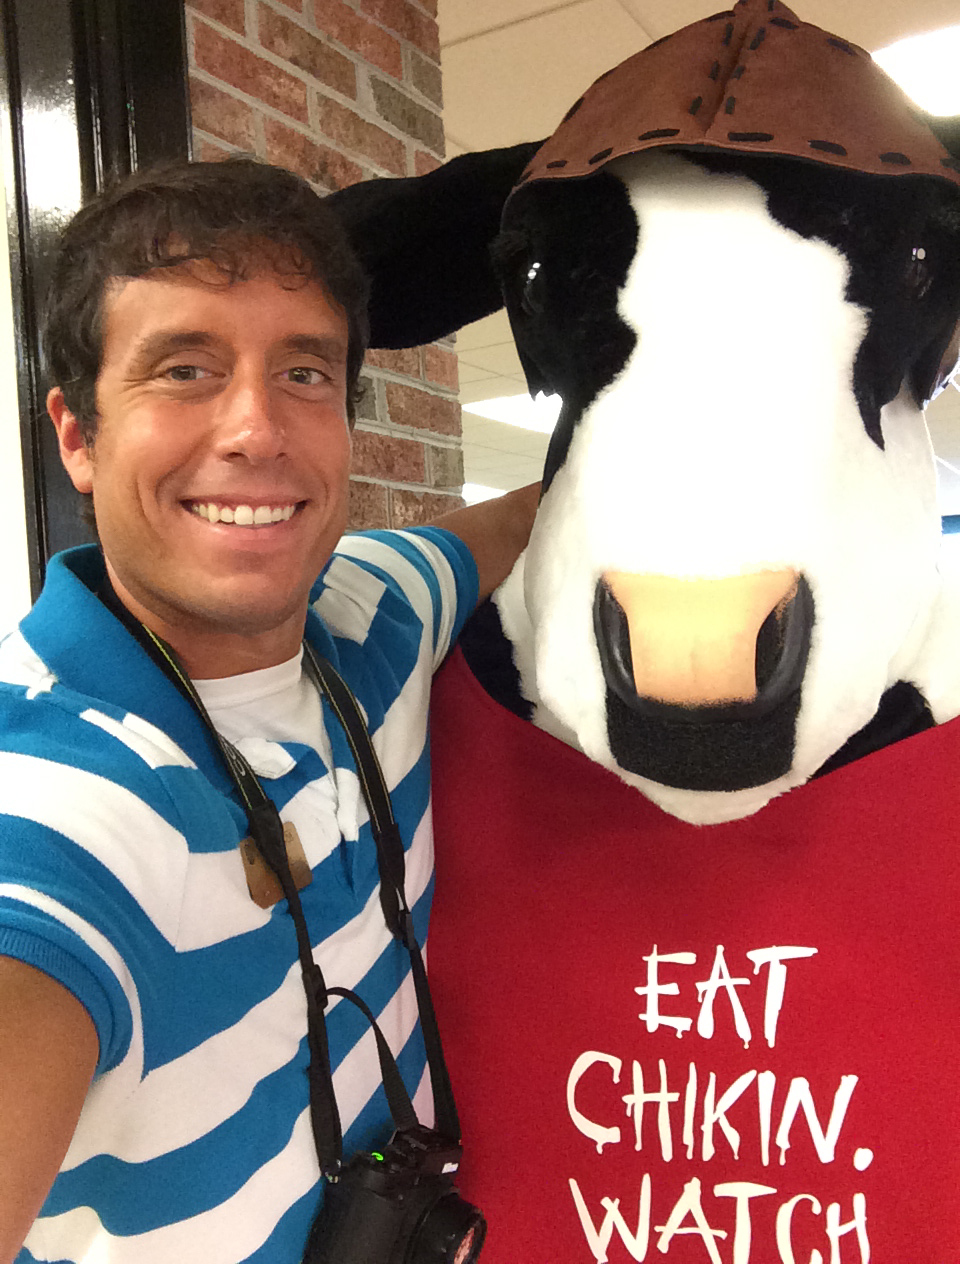 I took a photo with the Chick-fil-A cow at today's grand opening.